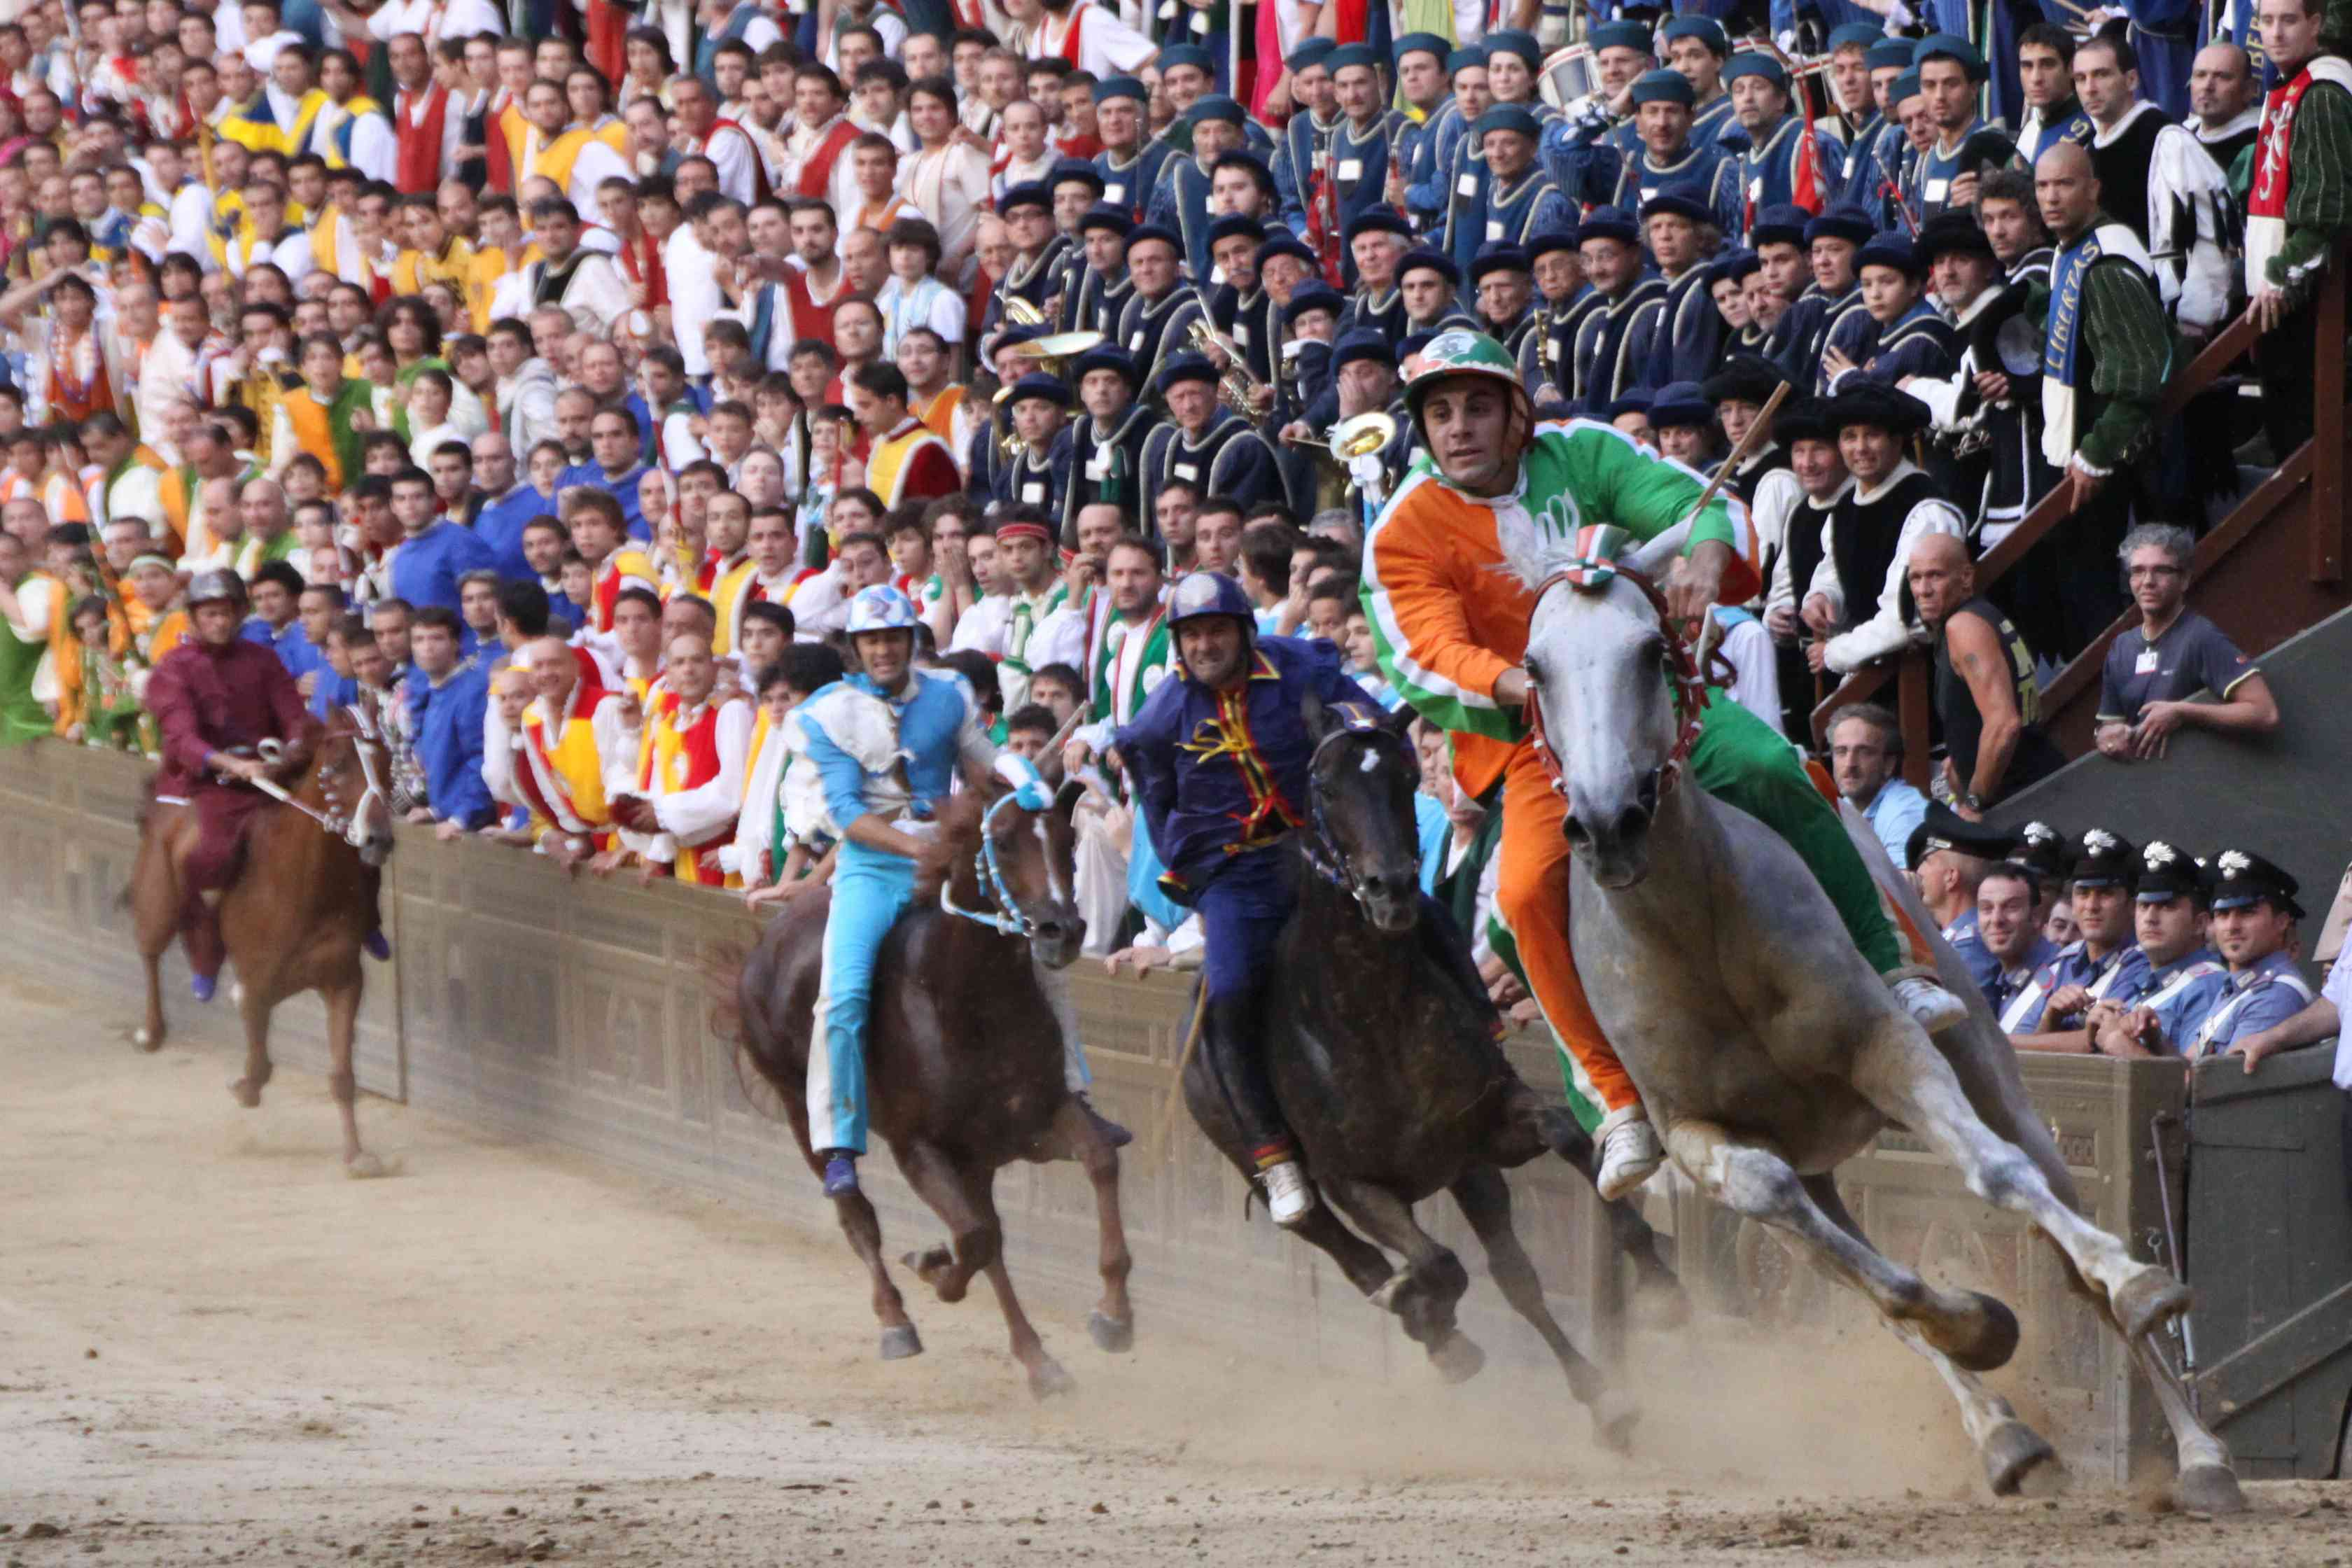 an overview of the bullfighting spectacle Deplored by some and adored by others, bullfighting is a bloody and violent  spectacle that straddles the boundaries between art and brutality.